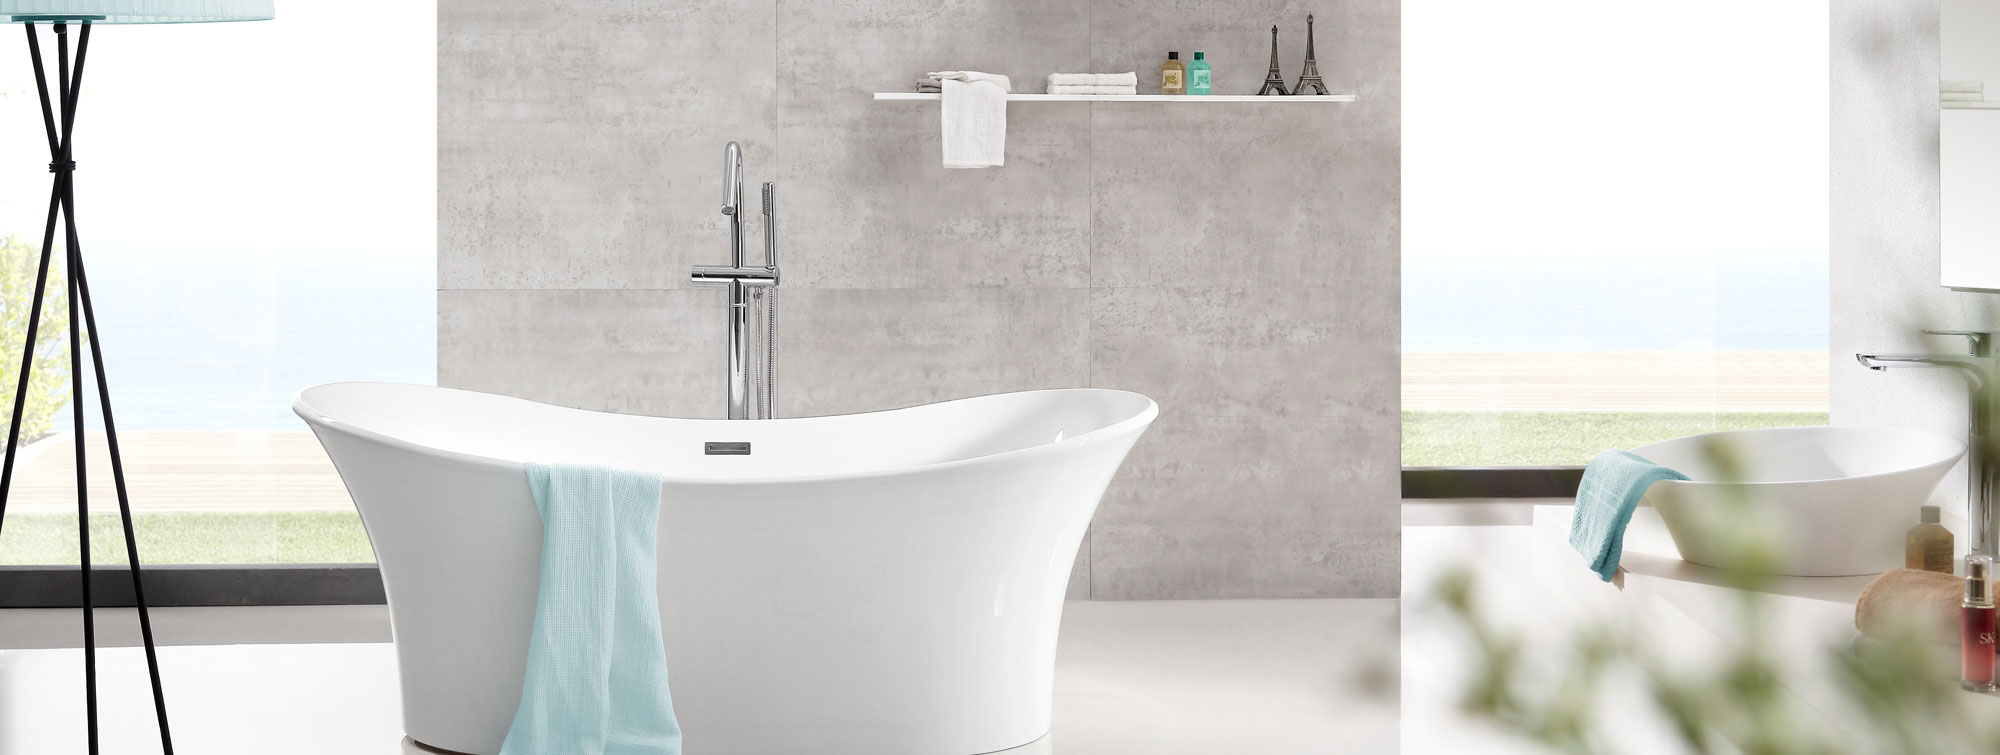 LOOKBath Voyeur Tub